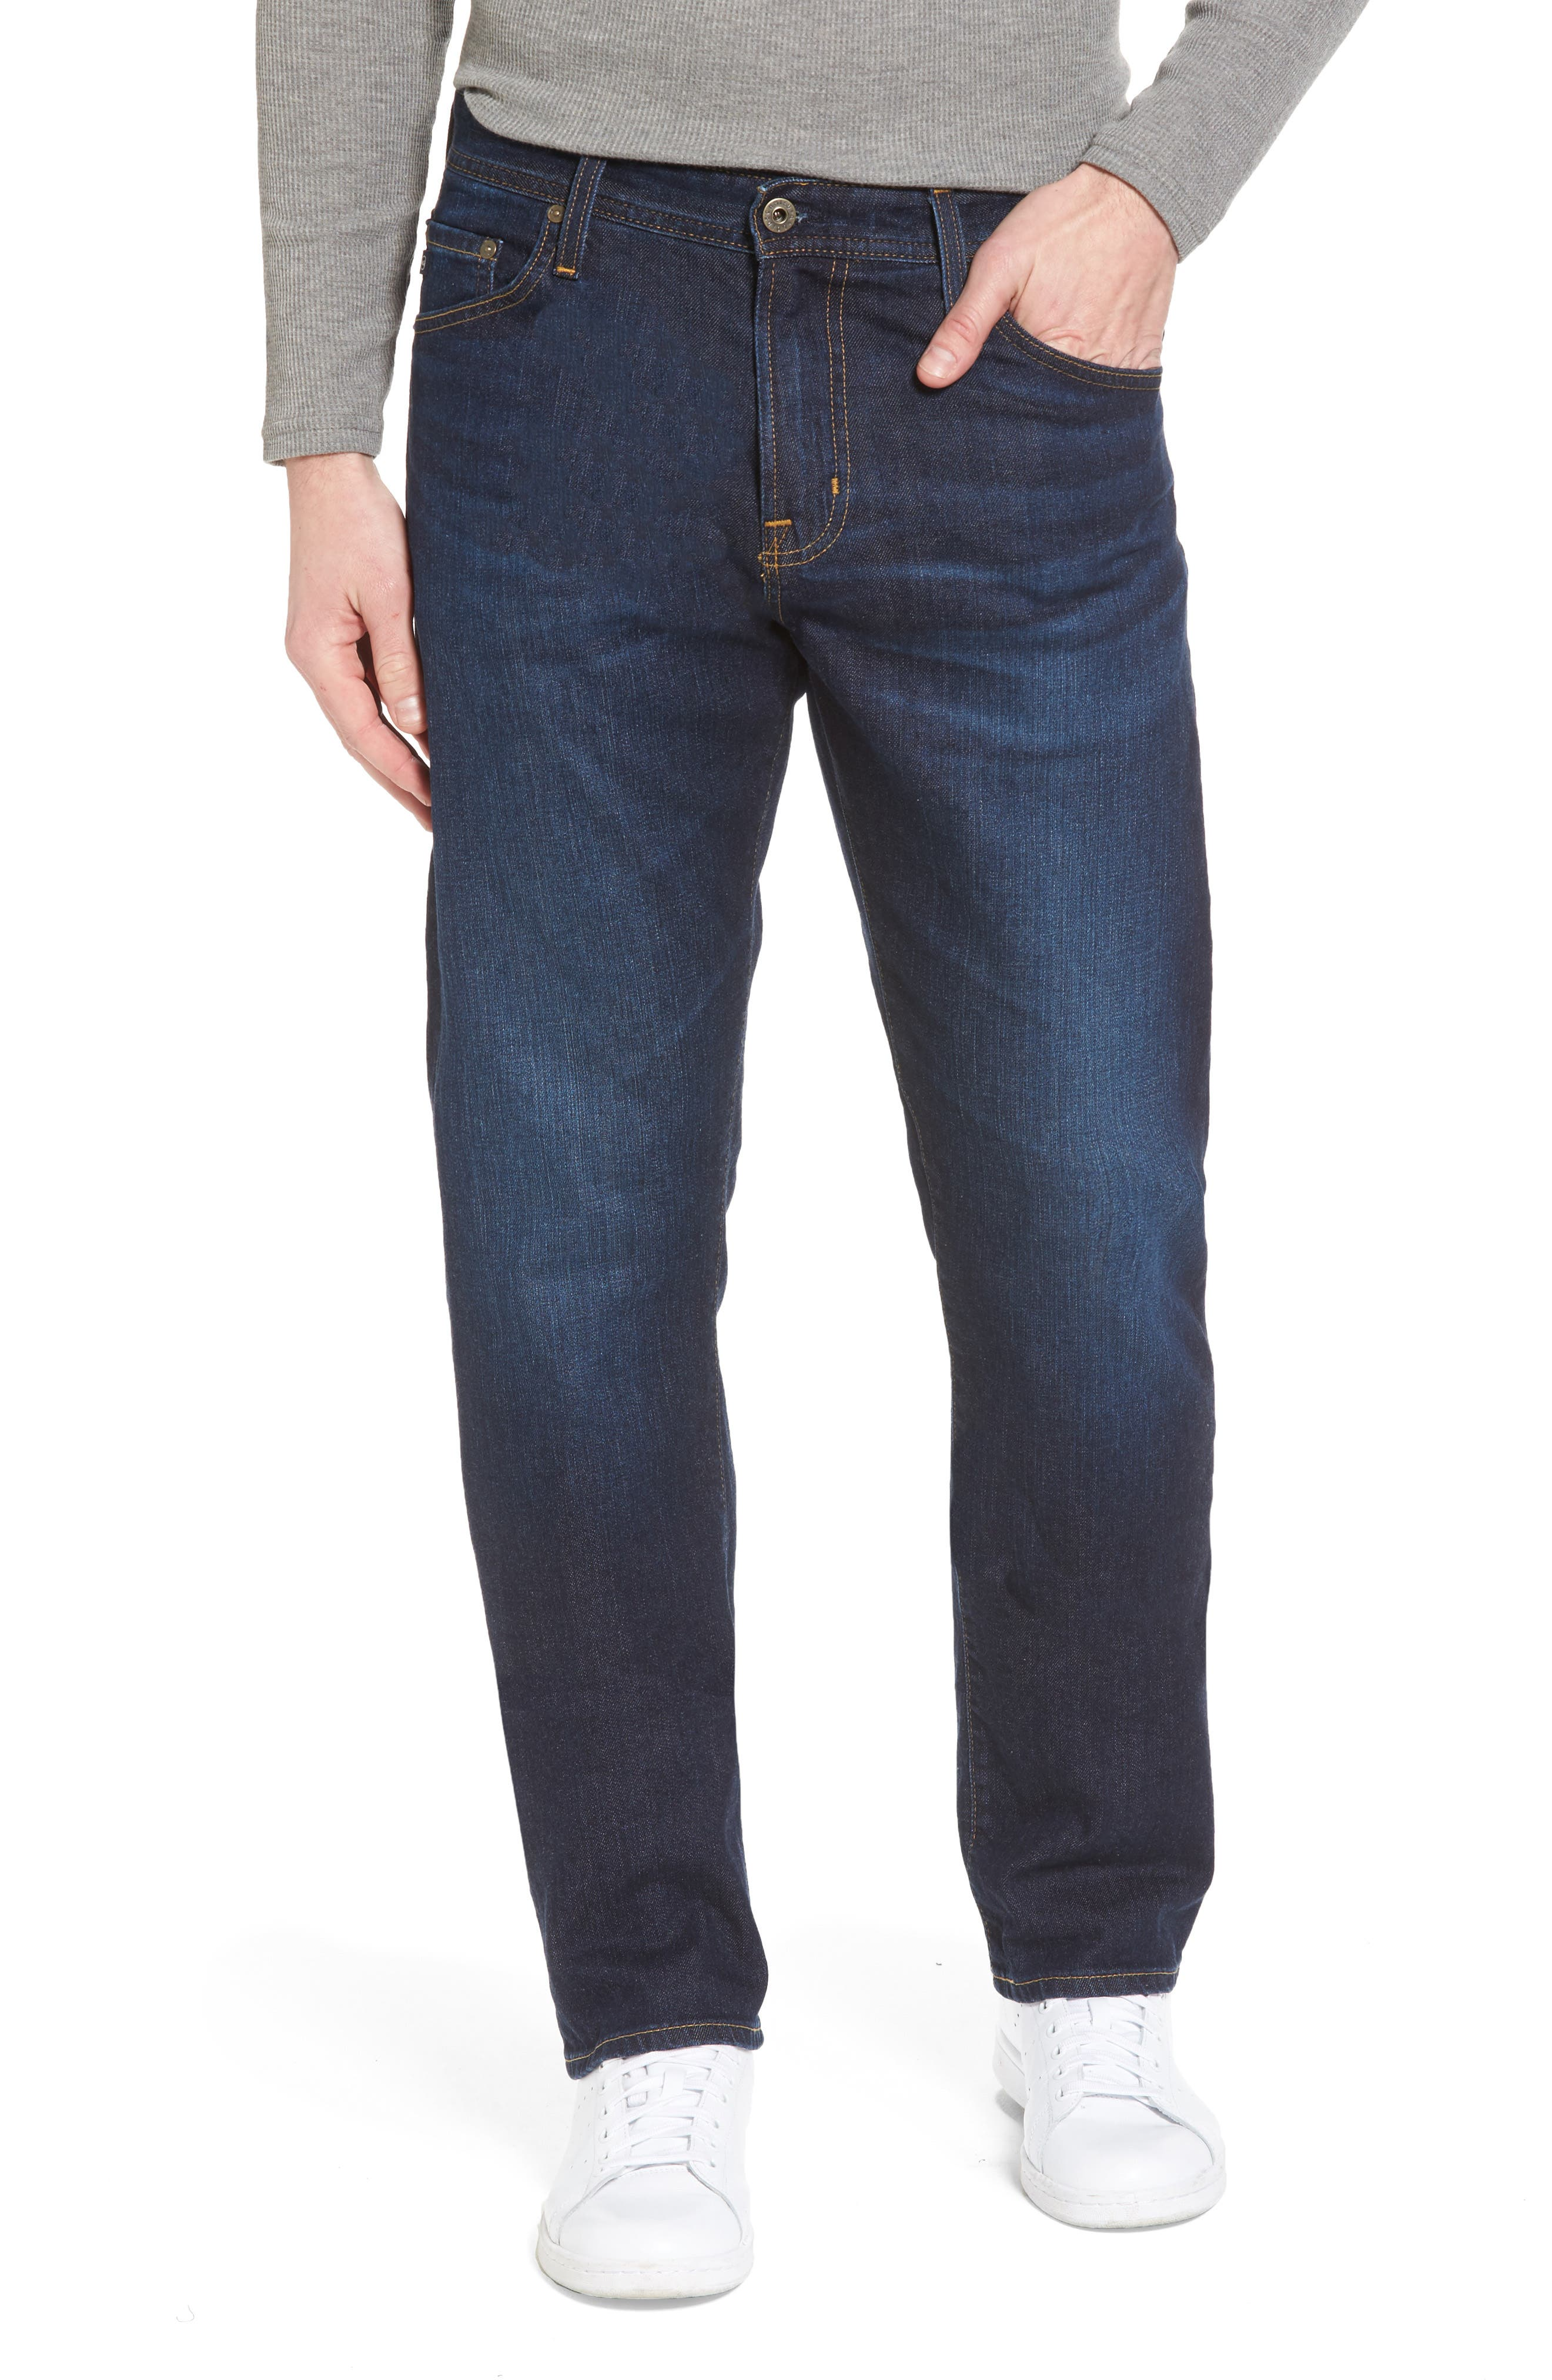 Ives Straight Fit Jeans,                             Main thumbnail 1, color,                             400